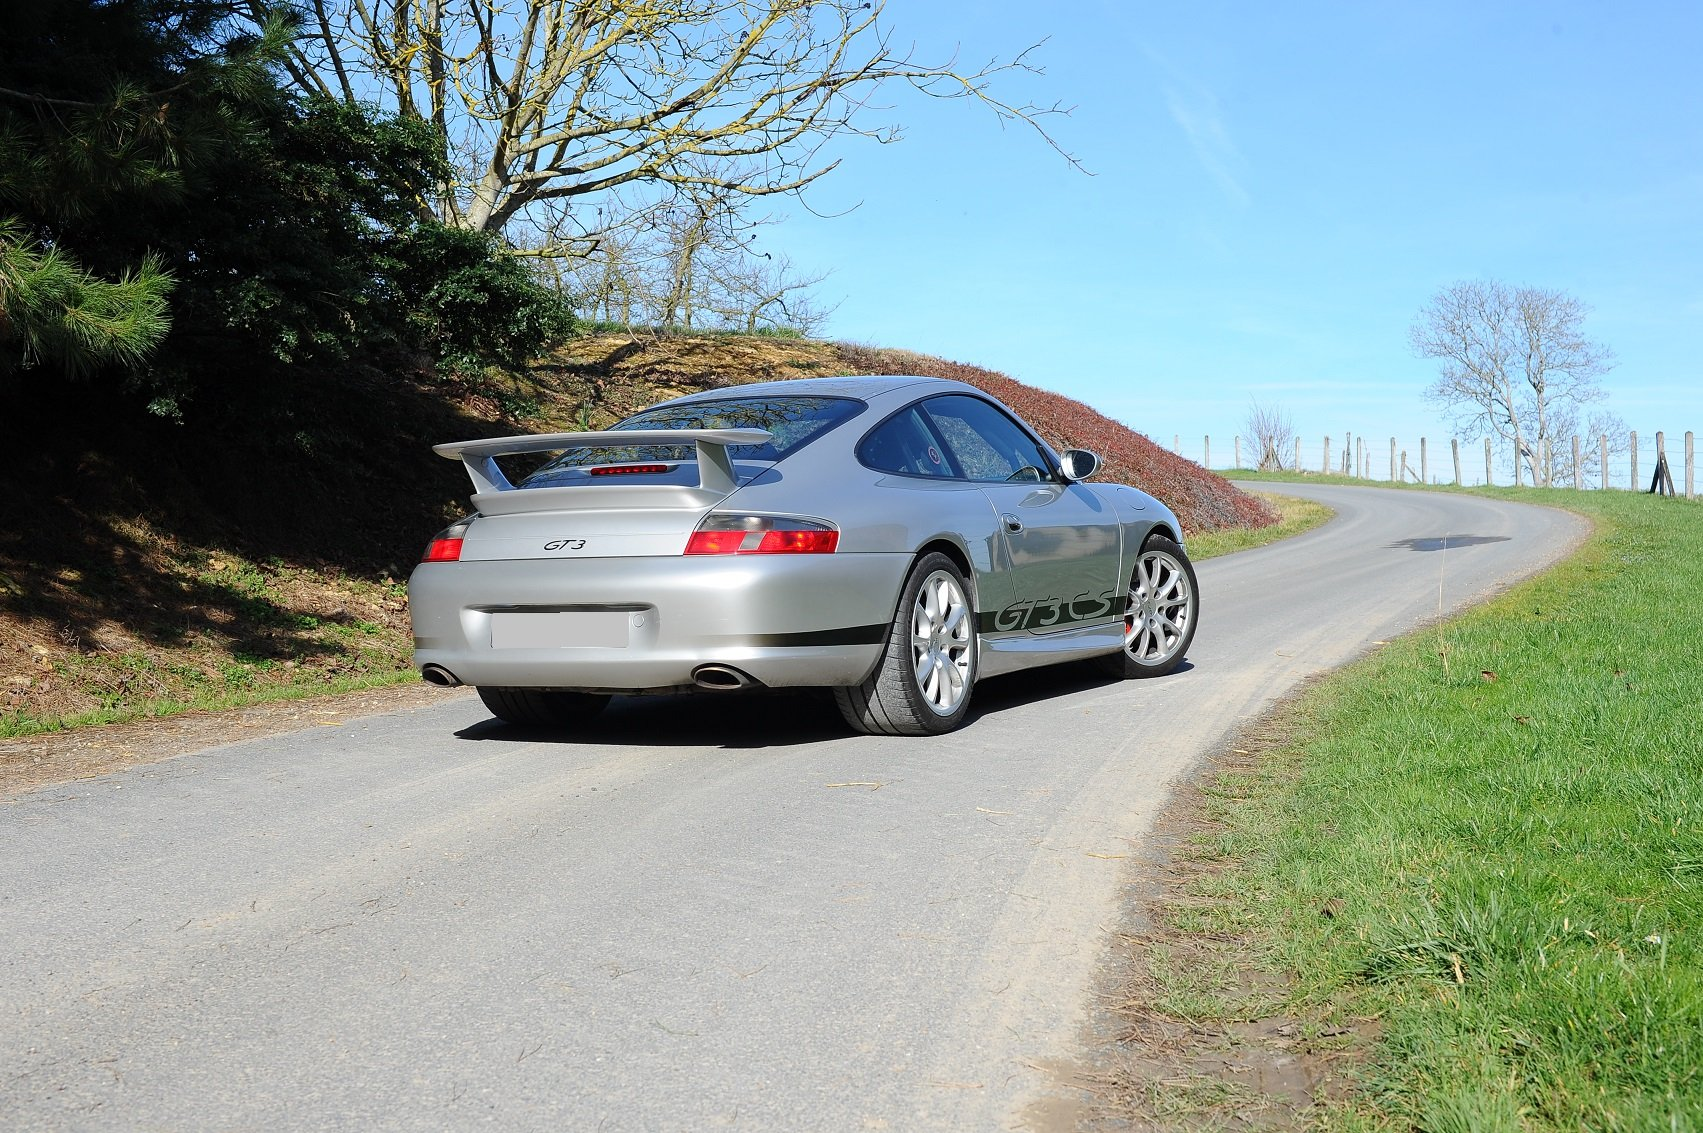 2004 - Porsche 996 GT3 Club Sport Ph.2  For Sale by Auction (picture 2 of 5)